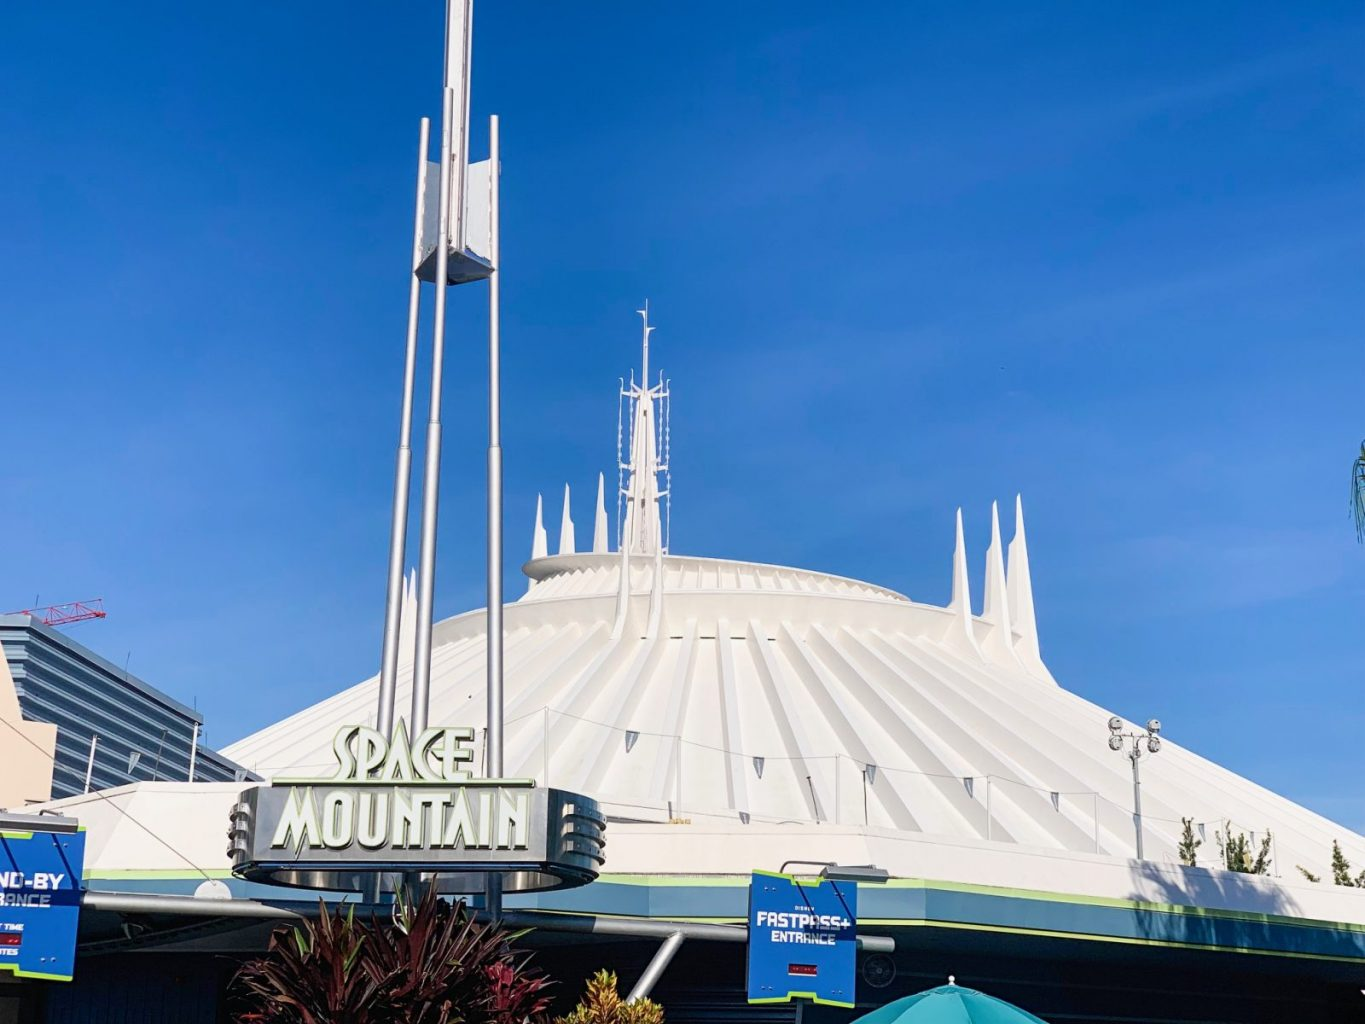 outside of Space Mountain ride at Magic Kingdom